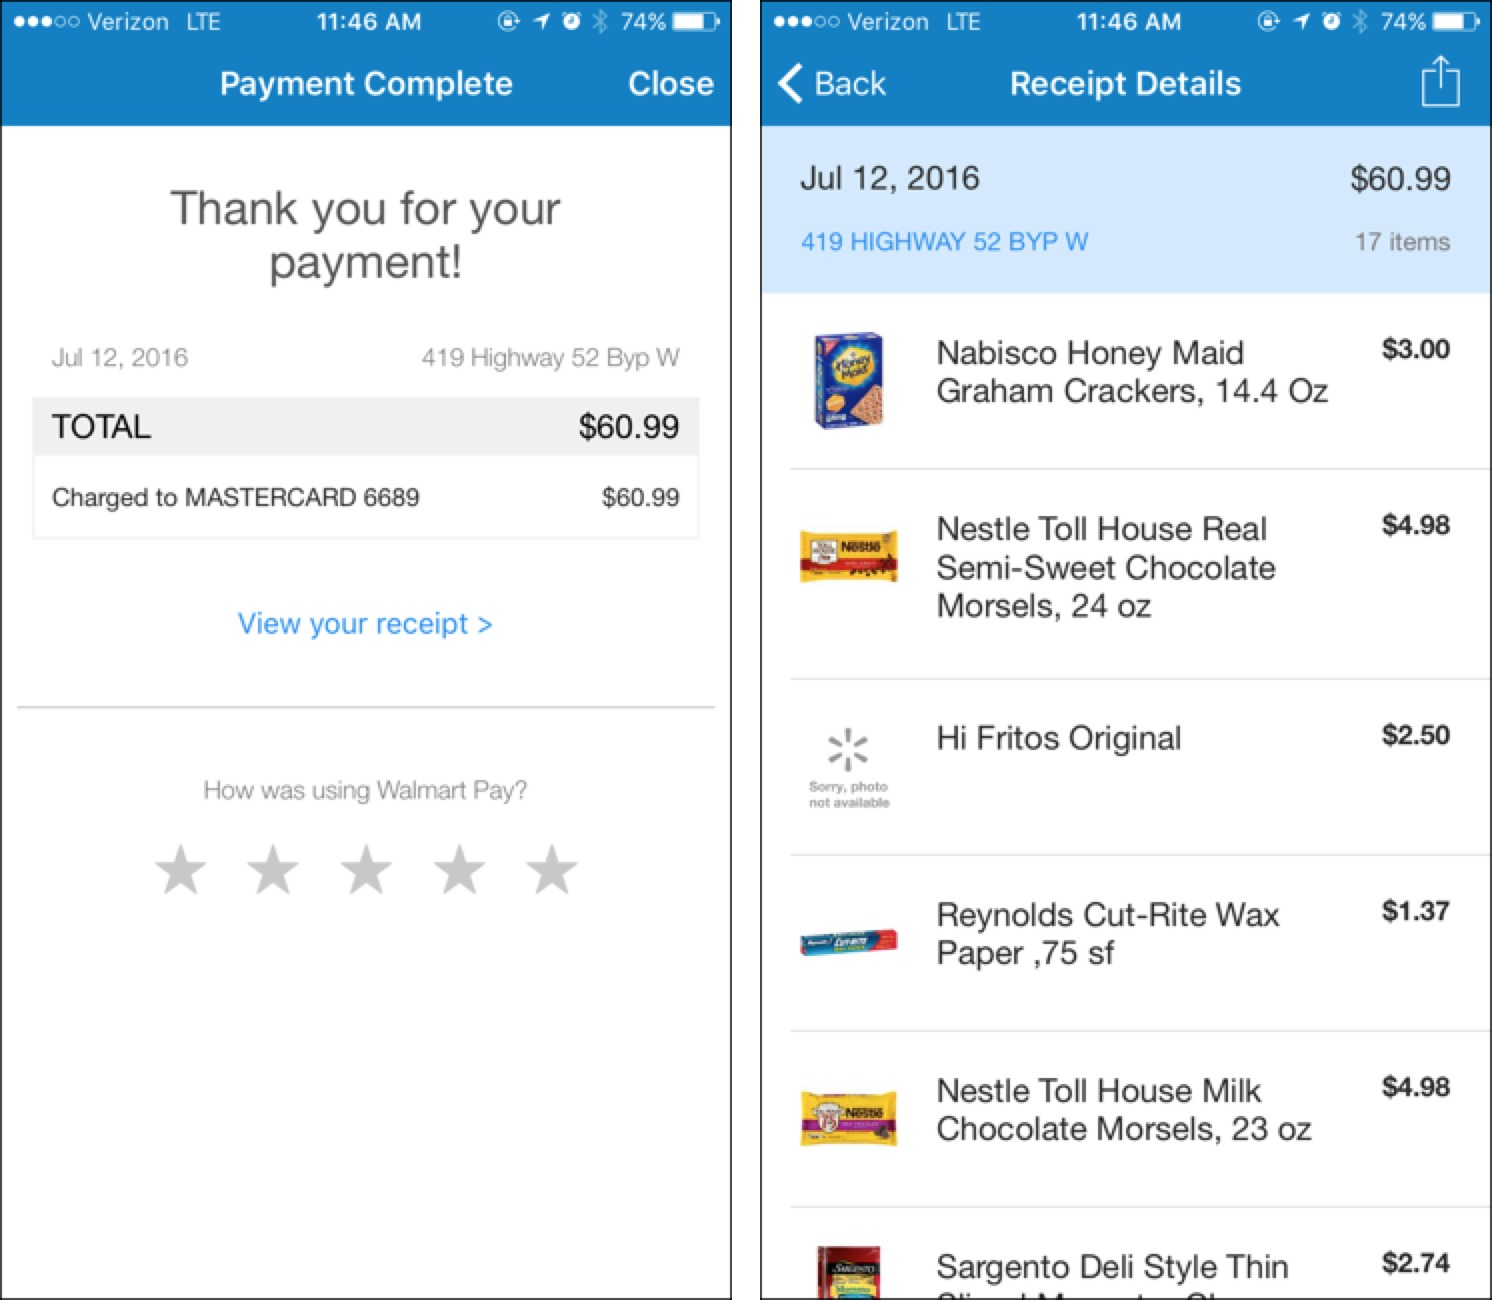 Walmart Pay Is Better Than You Might Expect - TidBITS